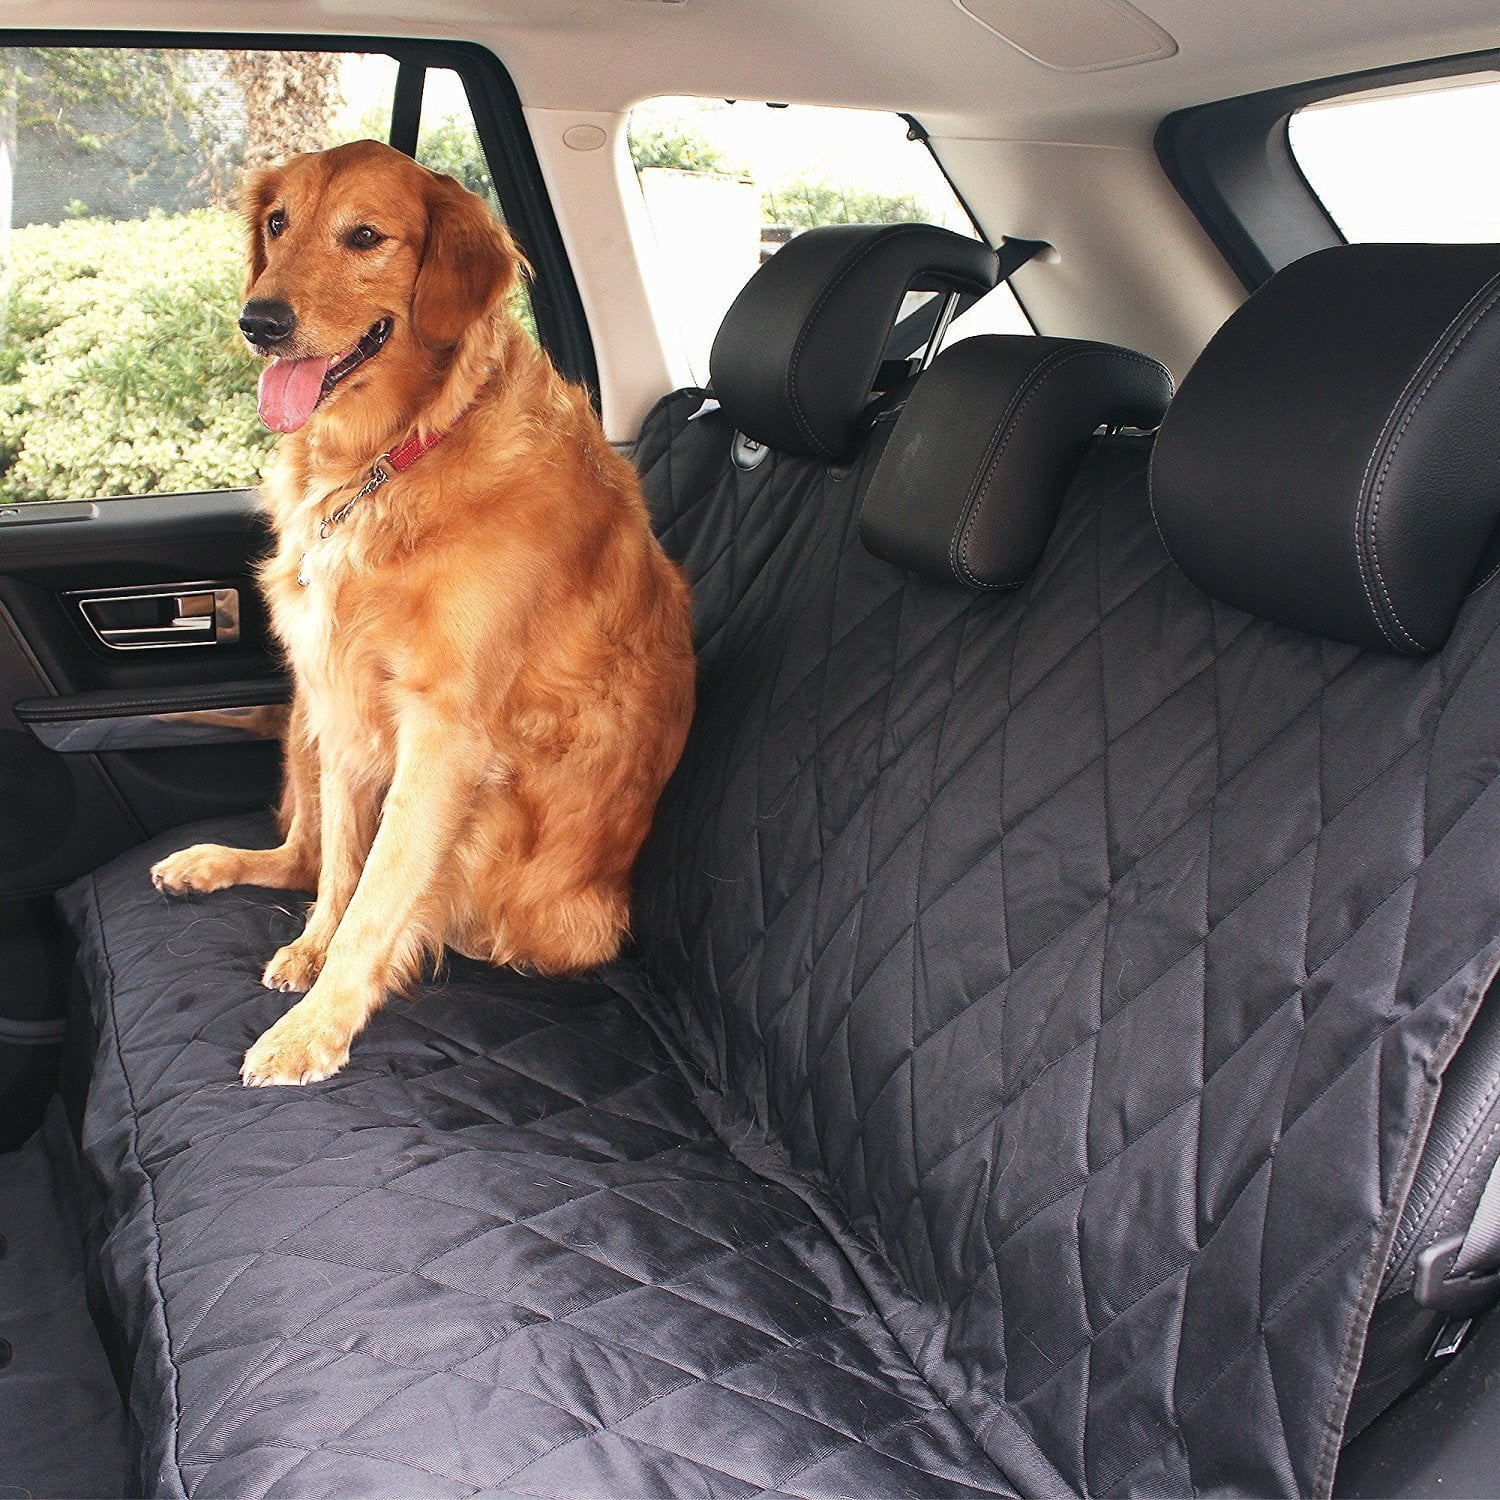 Waterproof Pet Seat Cover/hammock for Cars Trucks and SUVs - $21.59 after promo code and free shipping